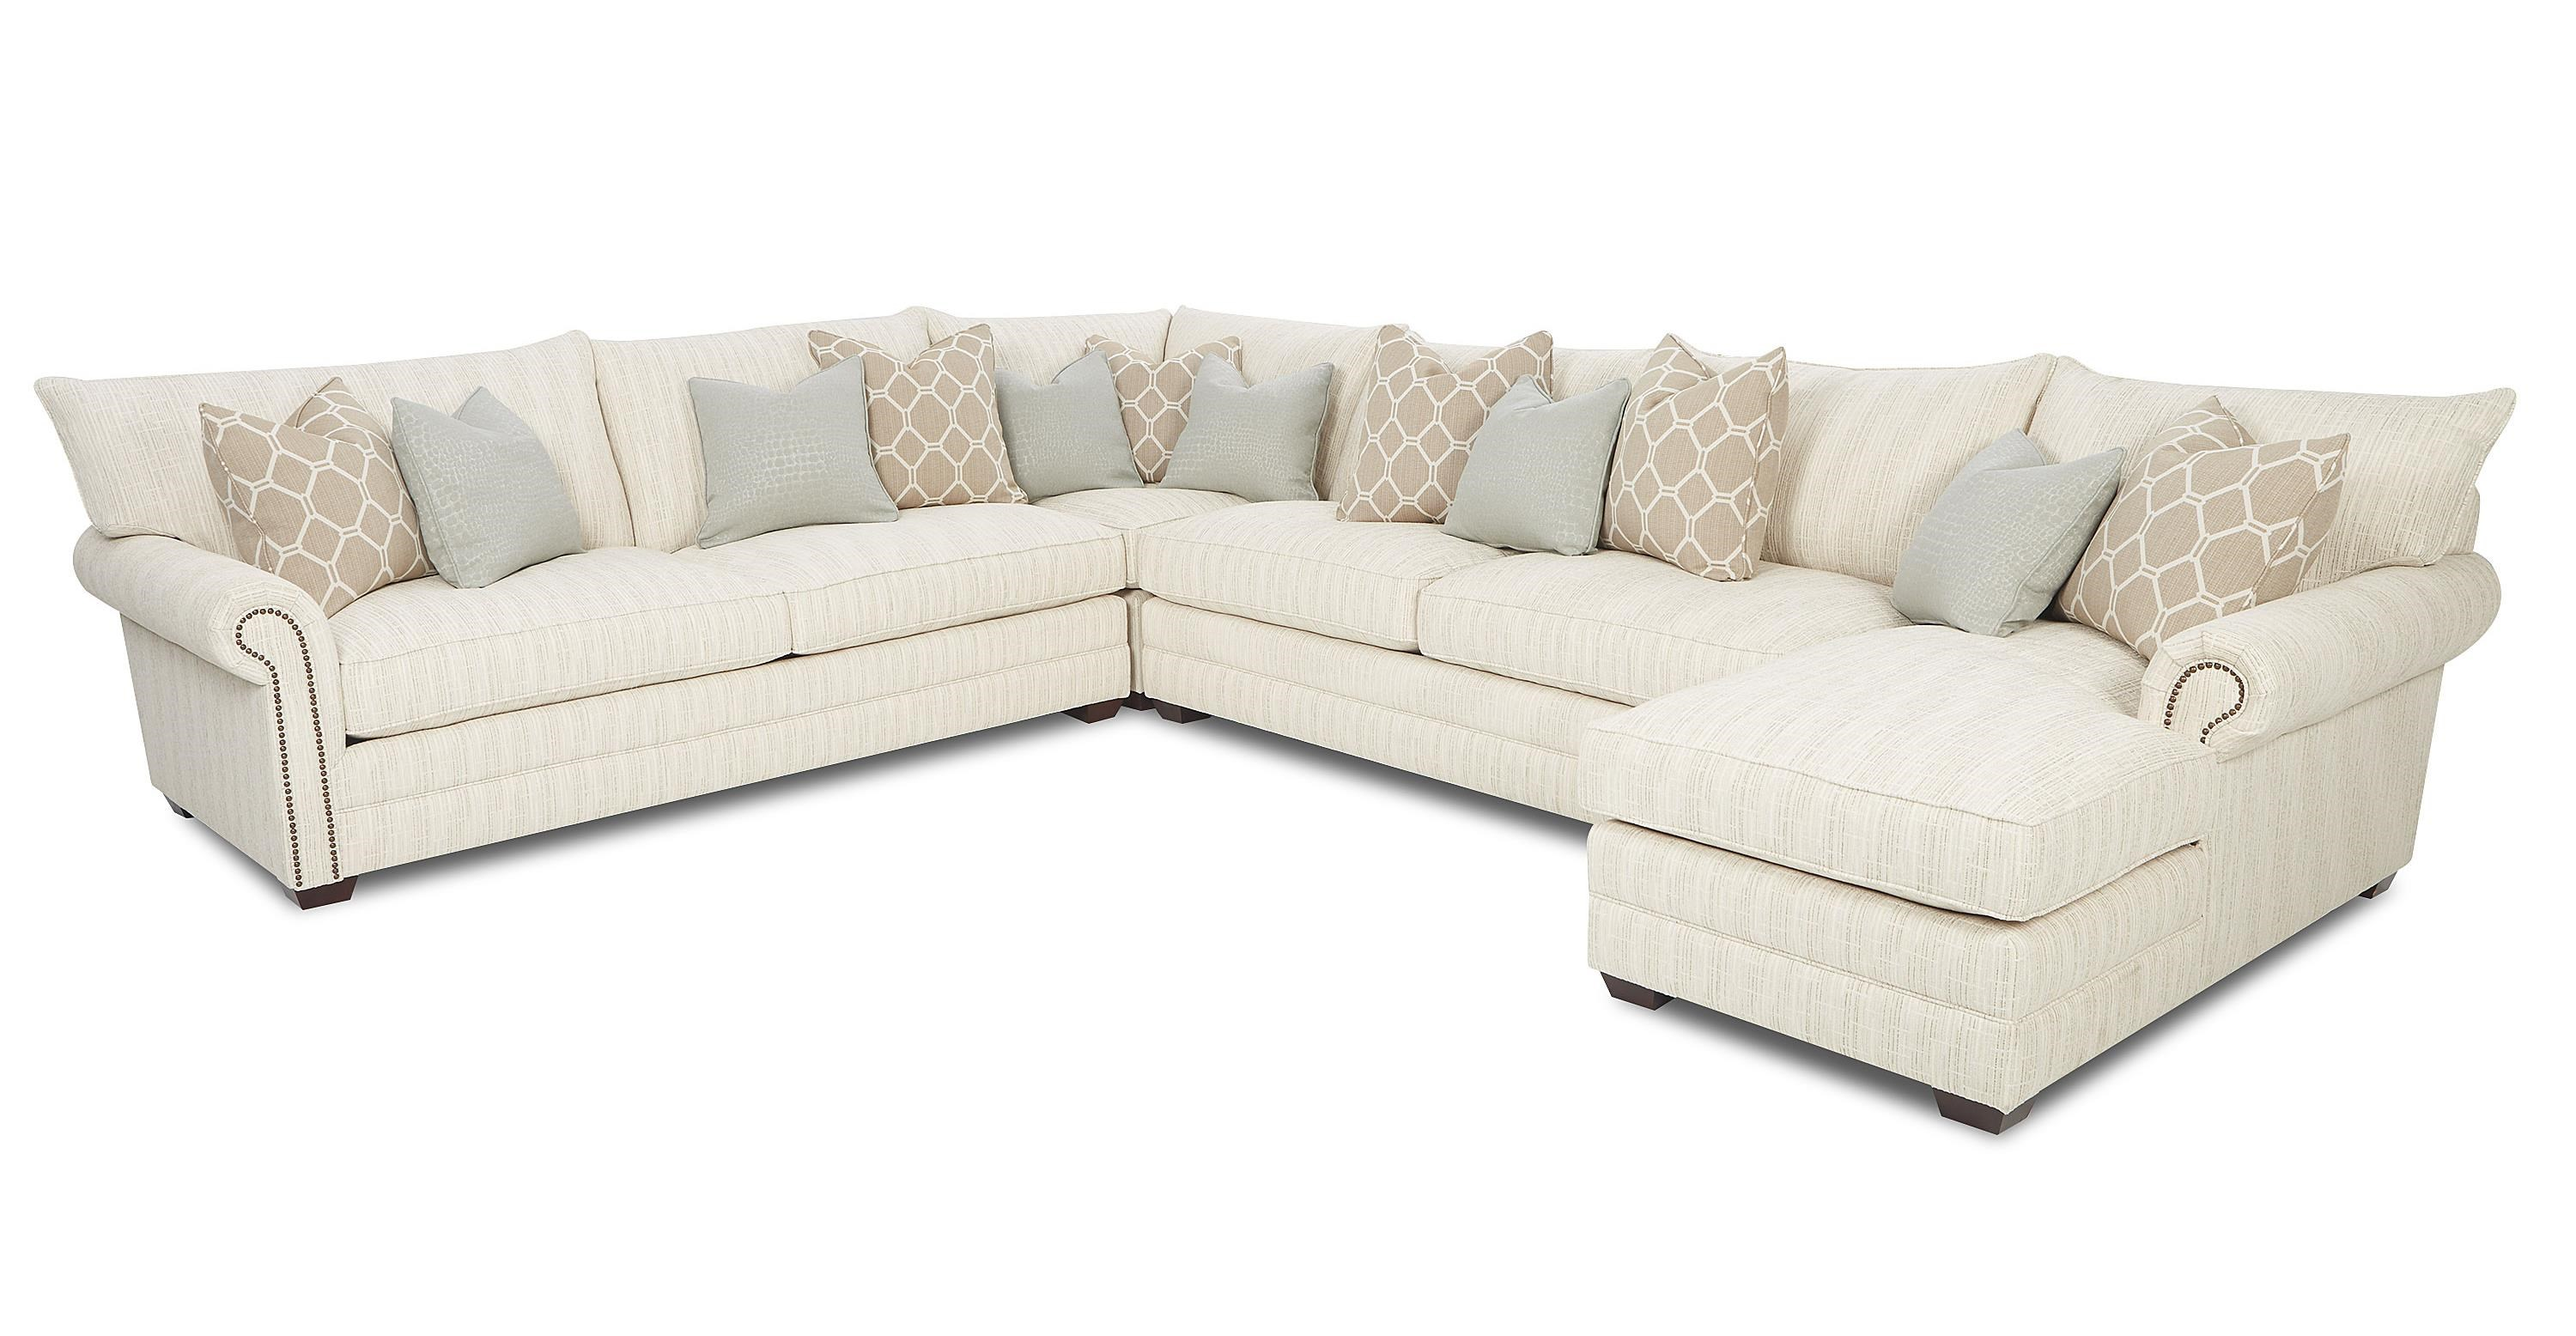 ... Traditional Sectional Sofa. Fabric Shown No Longer Available From  Manufacturer